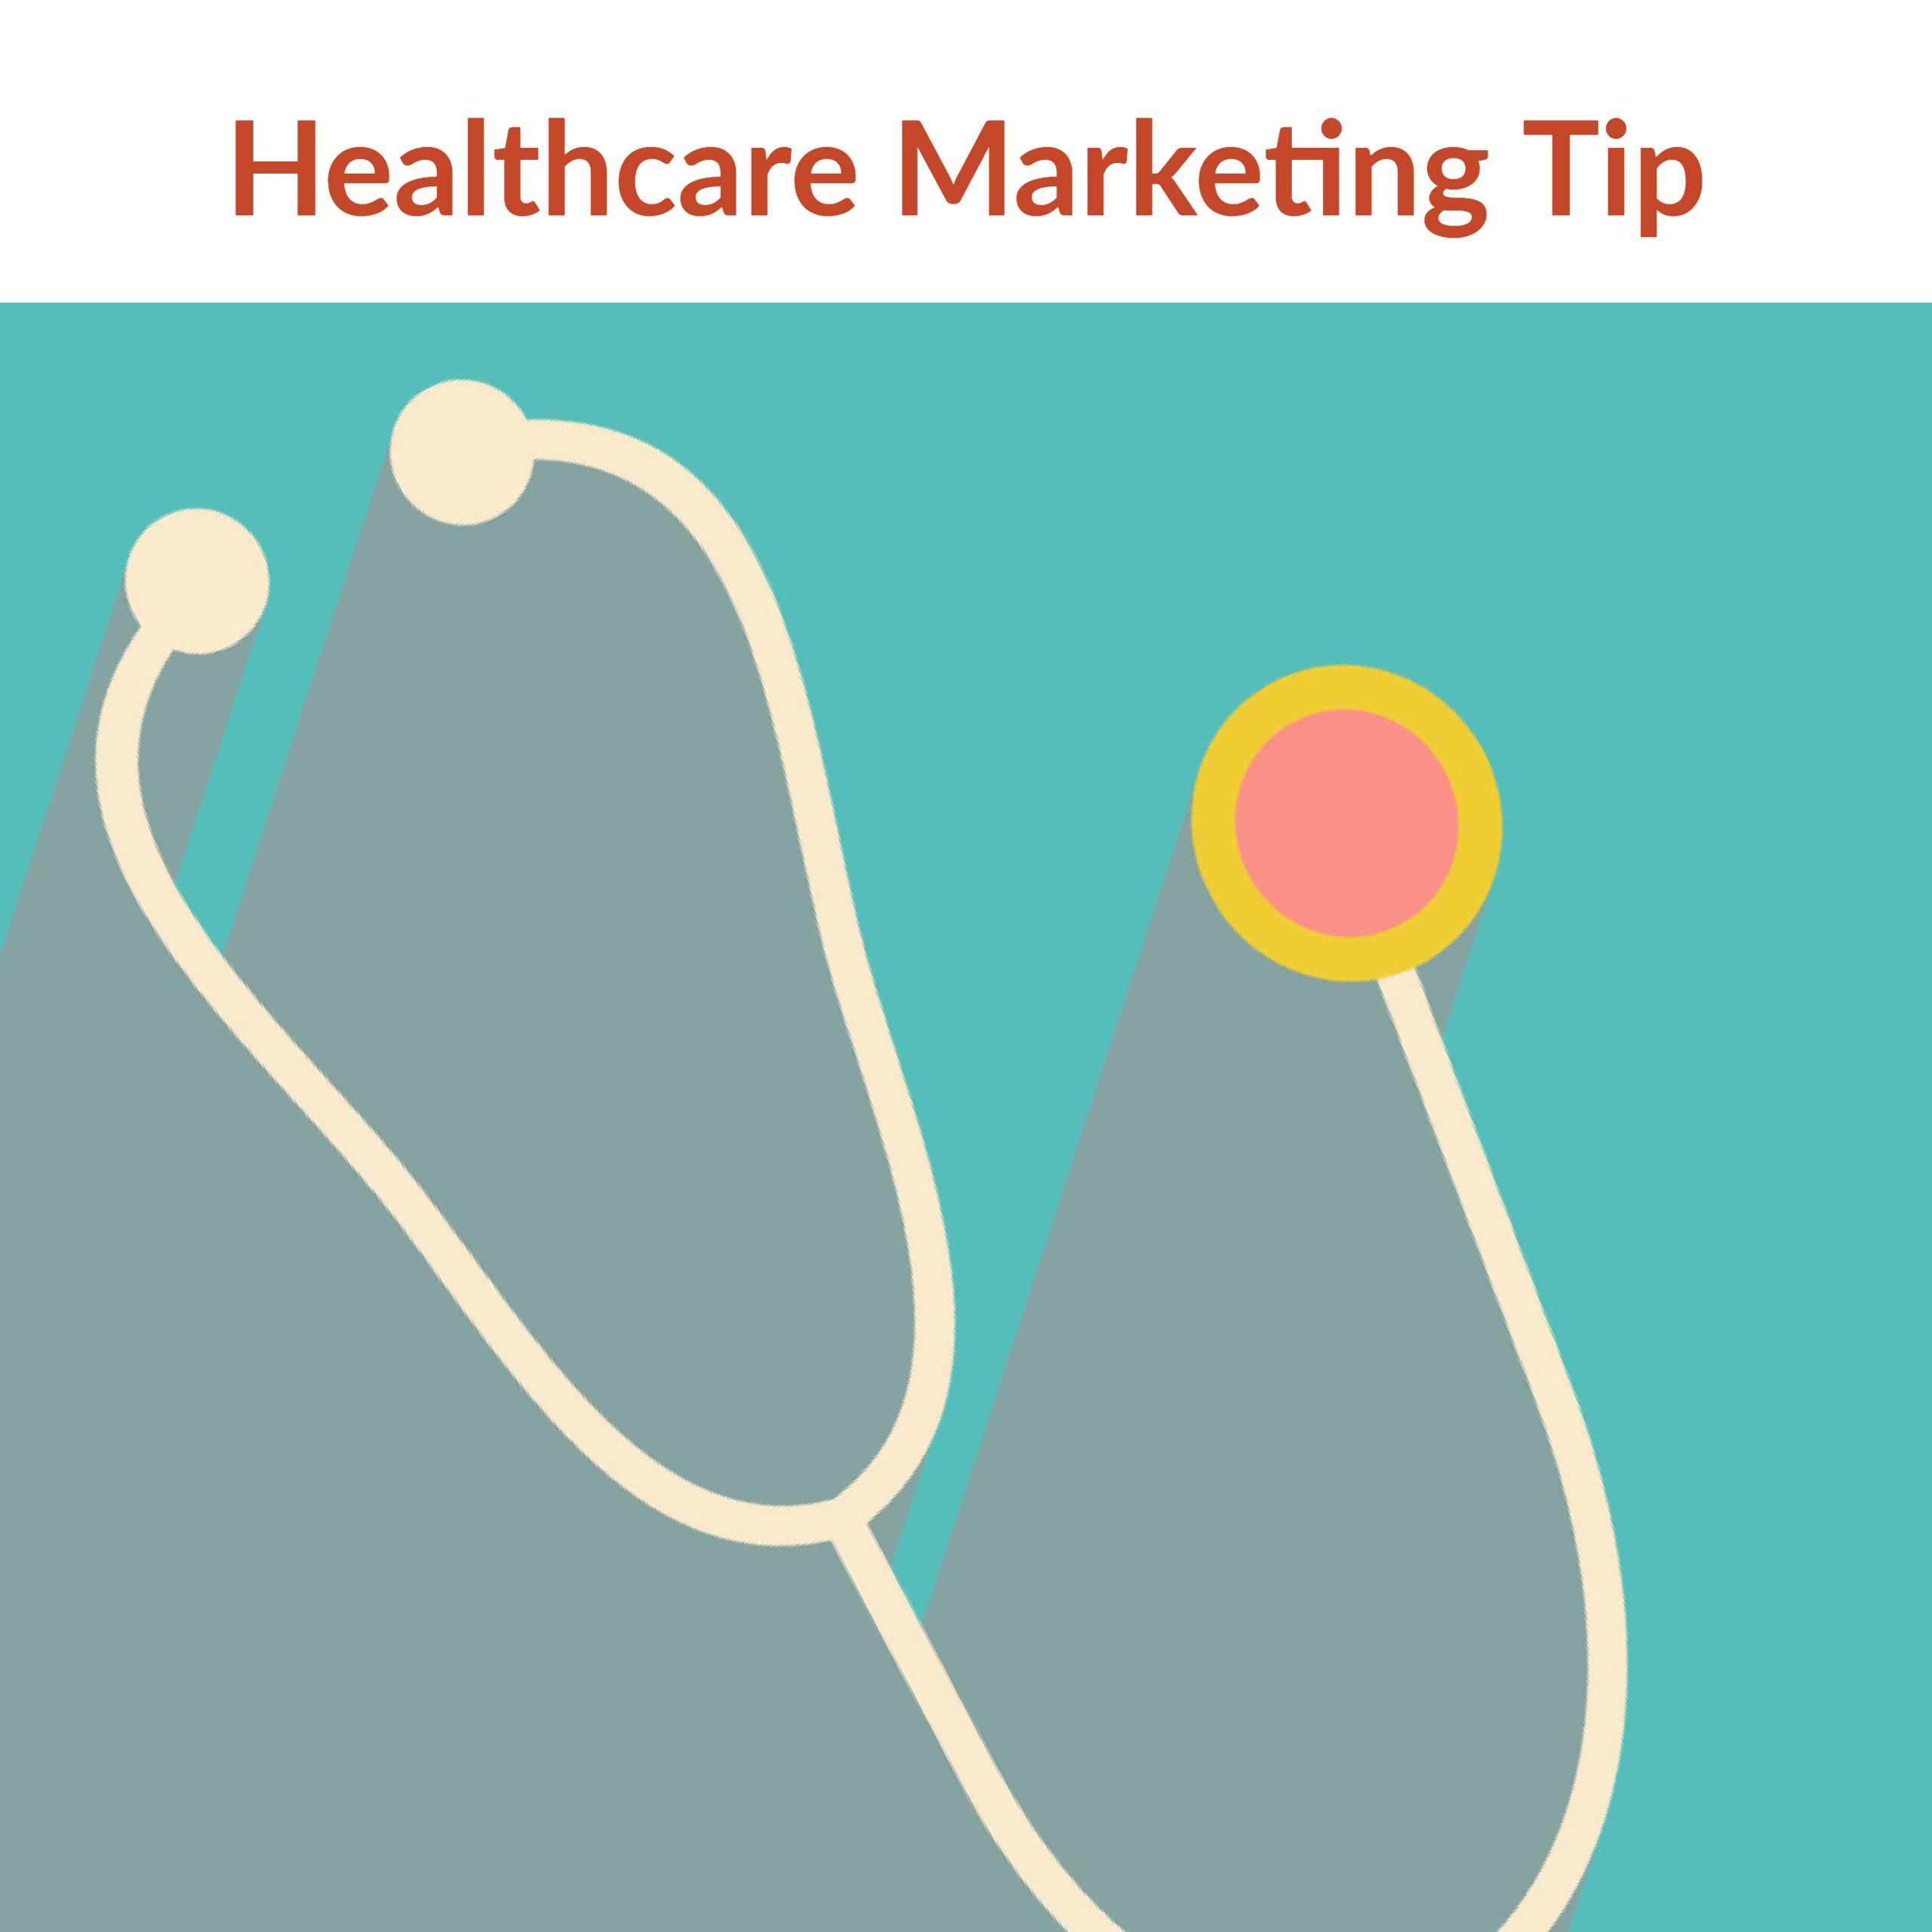 Specialty Healthcare Providers CAN Use Visual Social Media Marketing